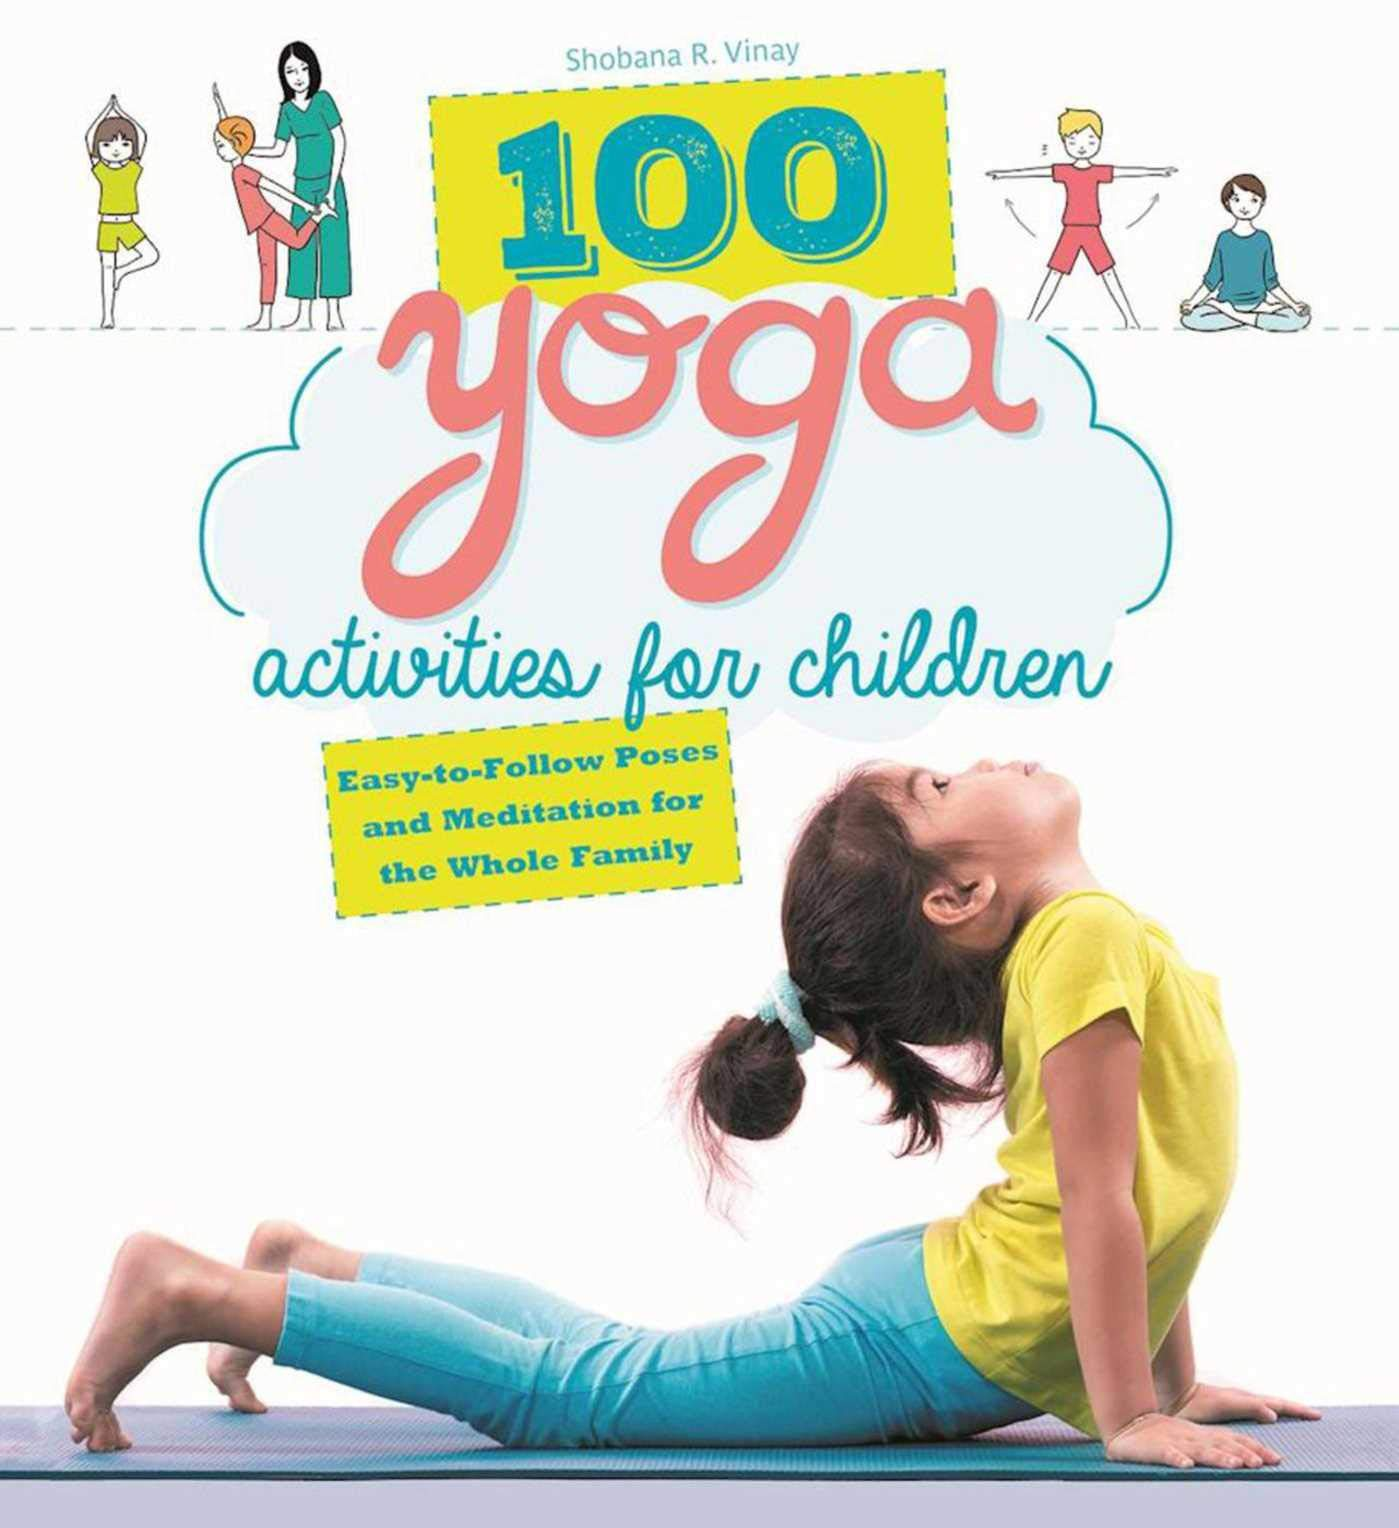 Skyhorse 100 Yoga Activities For Children Easy To Follow Poses And Meditation For The Whole Family Vinay Shobana R 9781510719590 Amazon Com Books